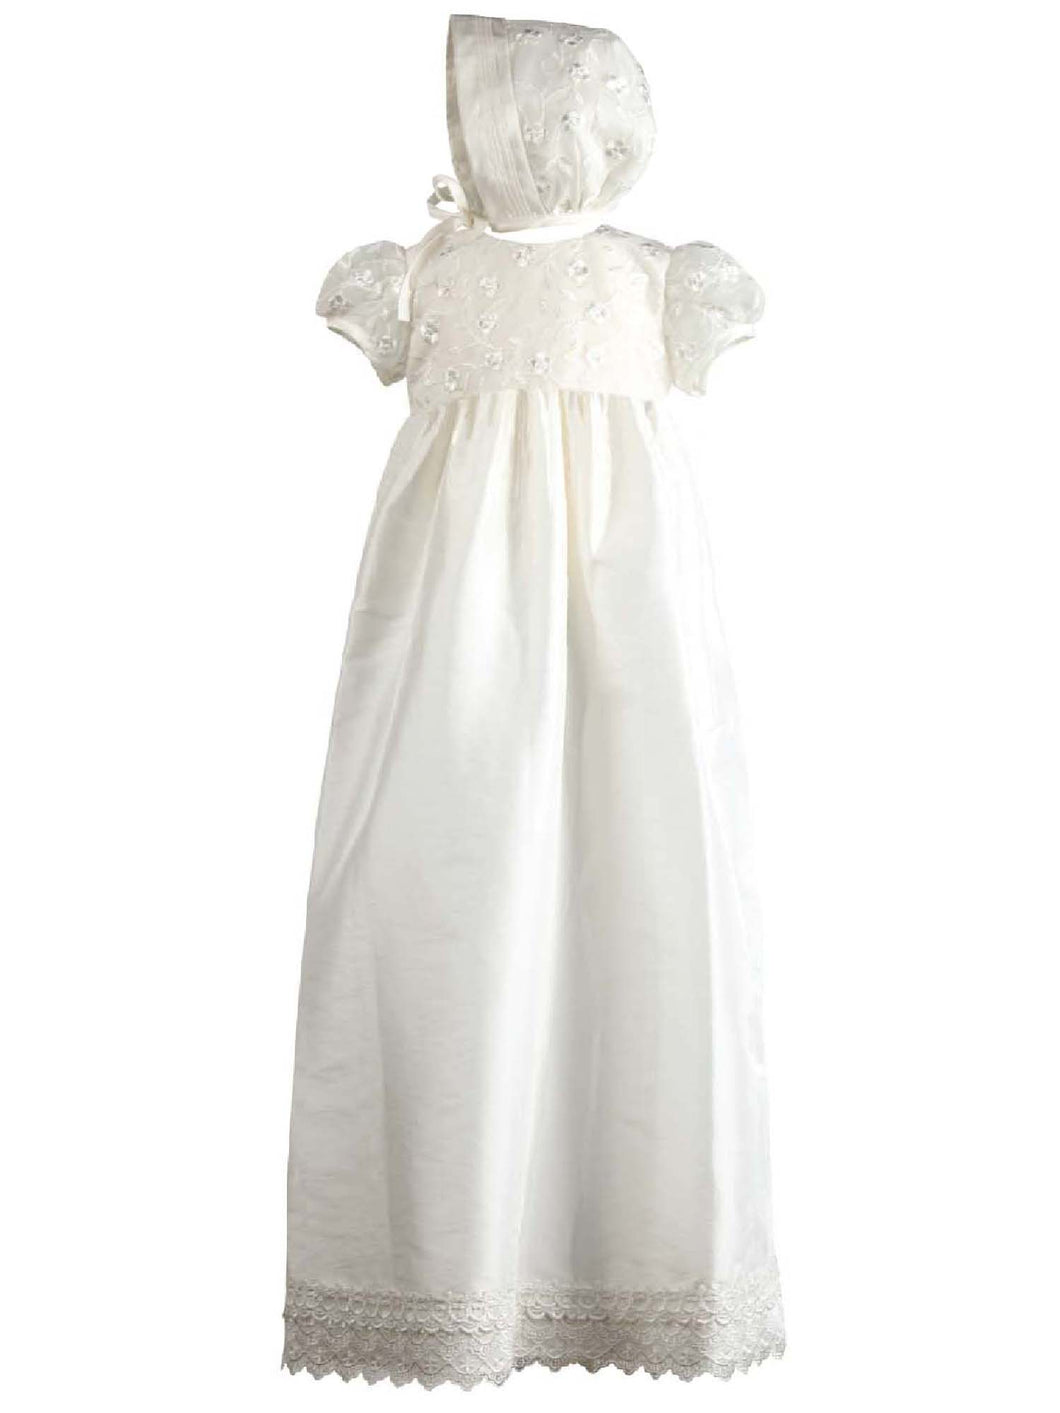 Nessa - Traditional Lace Bodice Christening Robe with Matching Bonnet